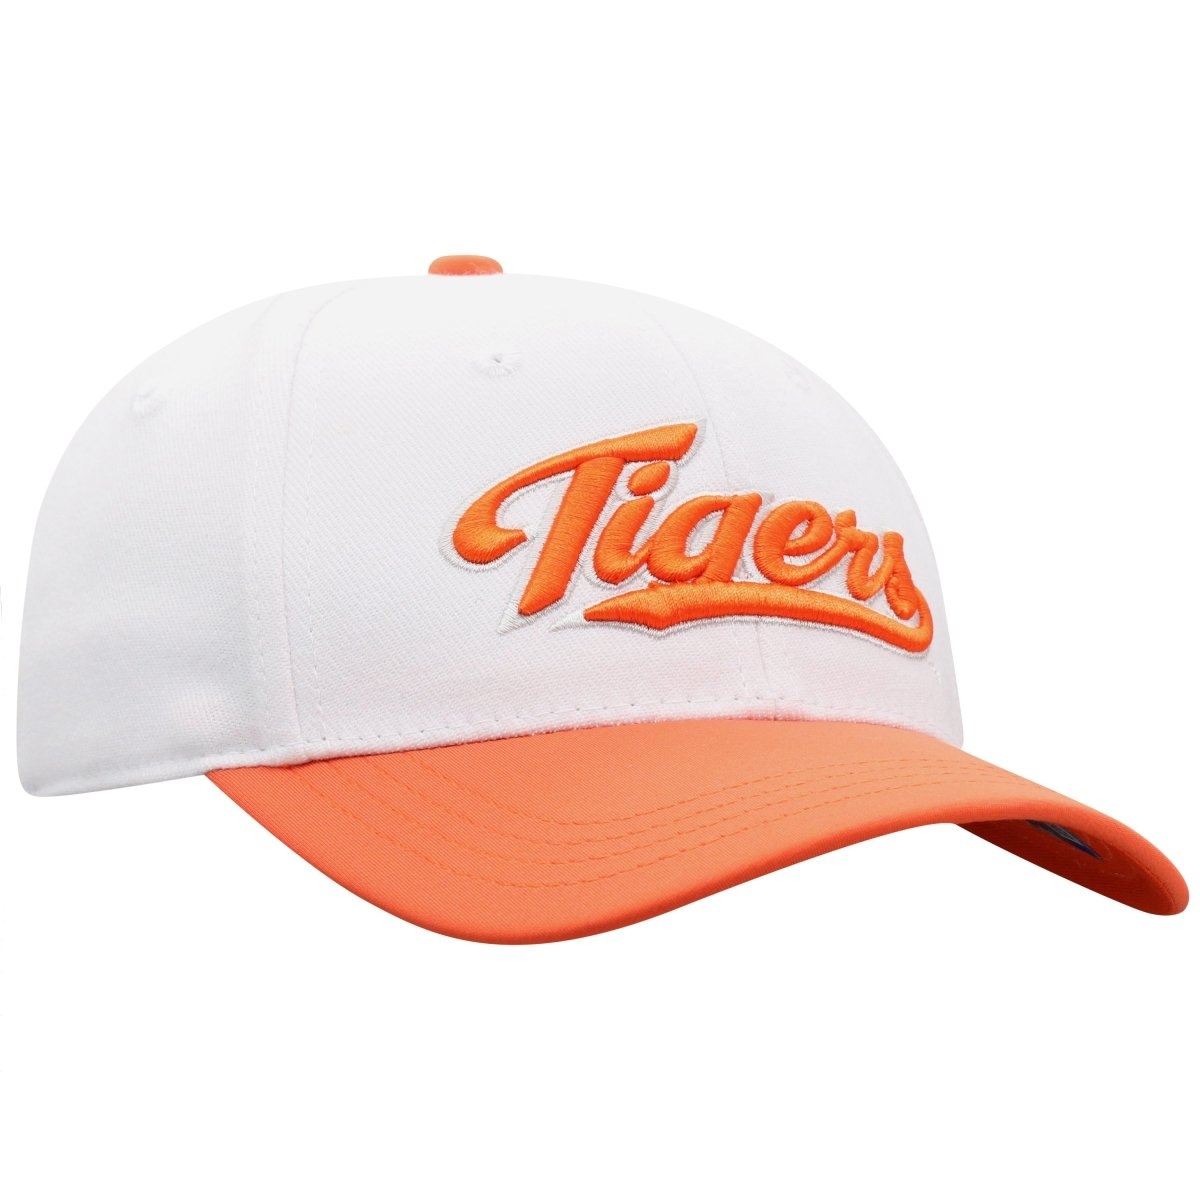 Top of the World Clemson Infield Cap With Tigers Script - Mr. Knickerbocker